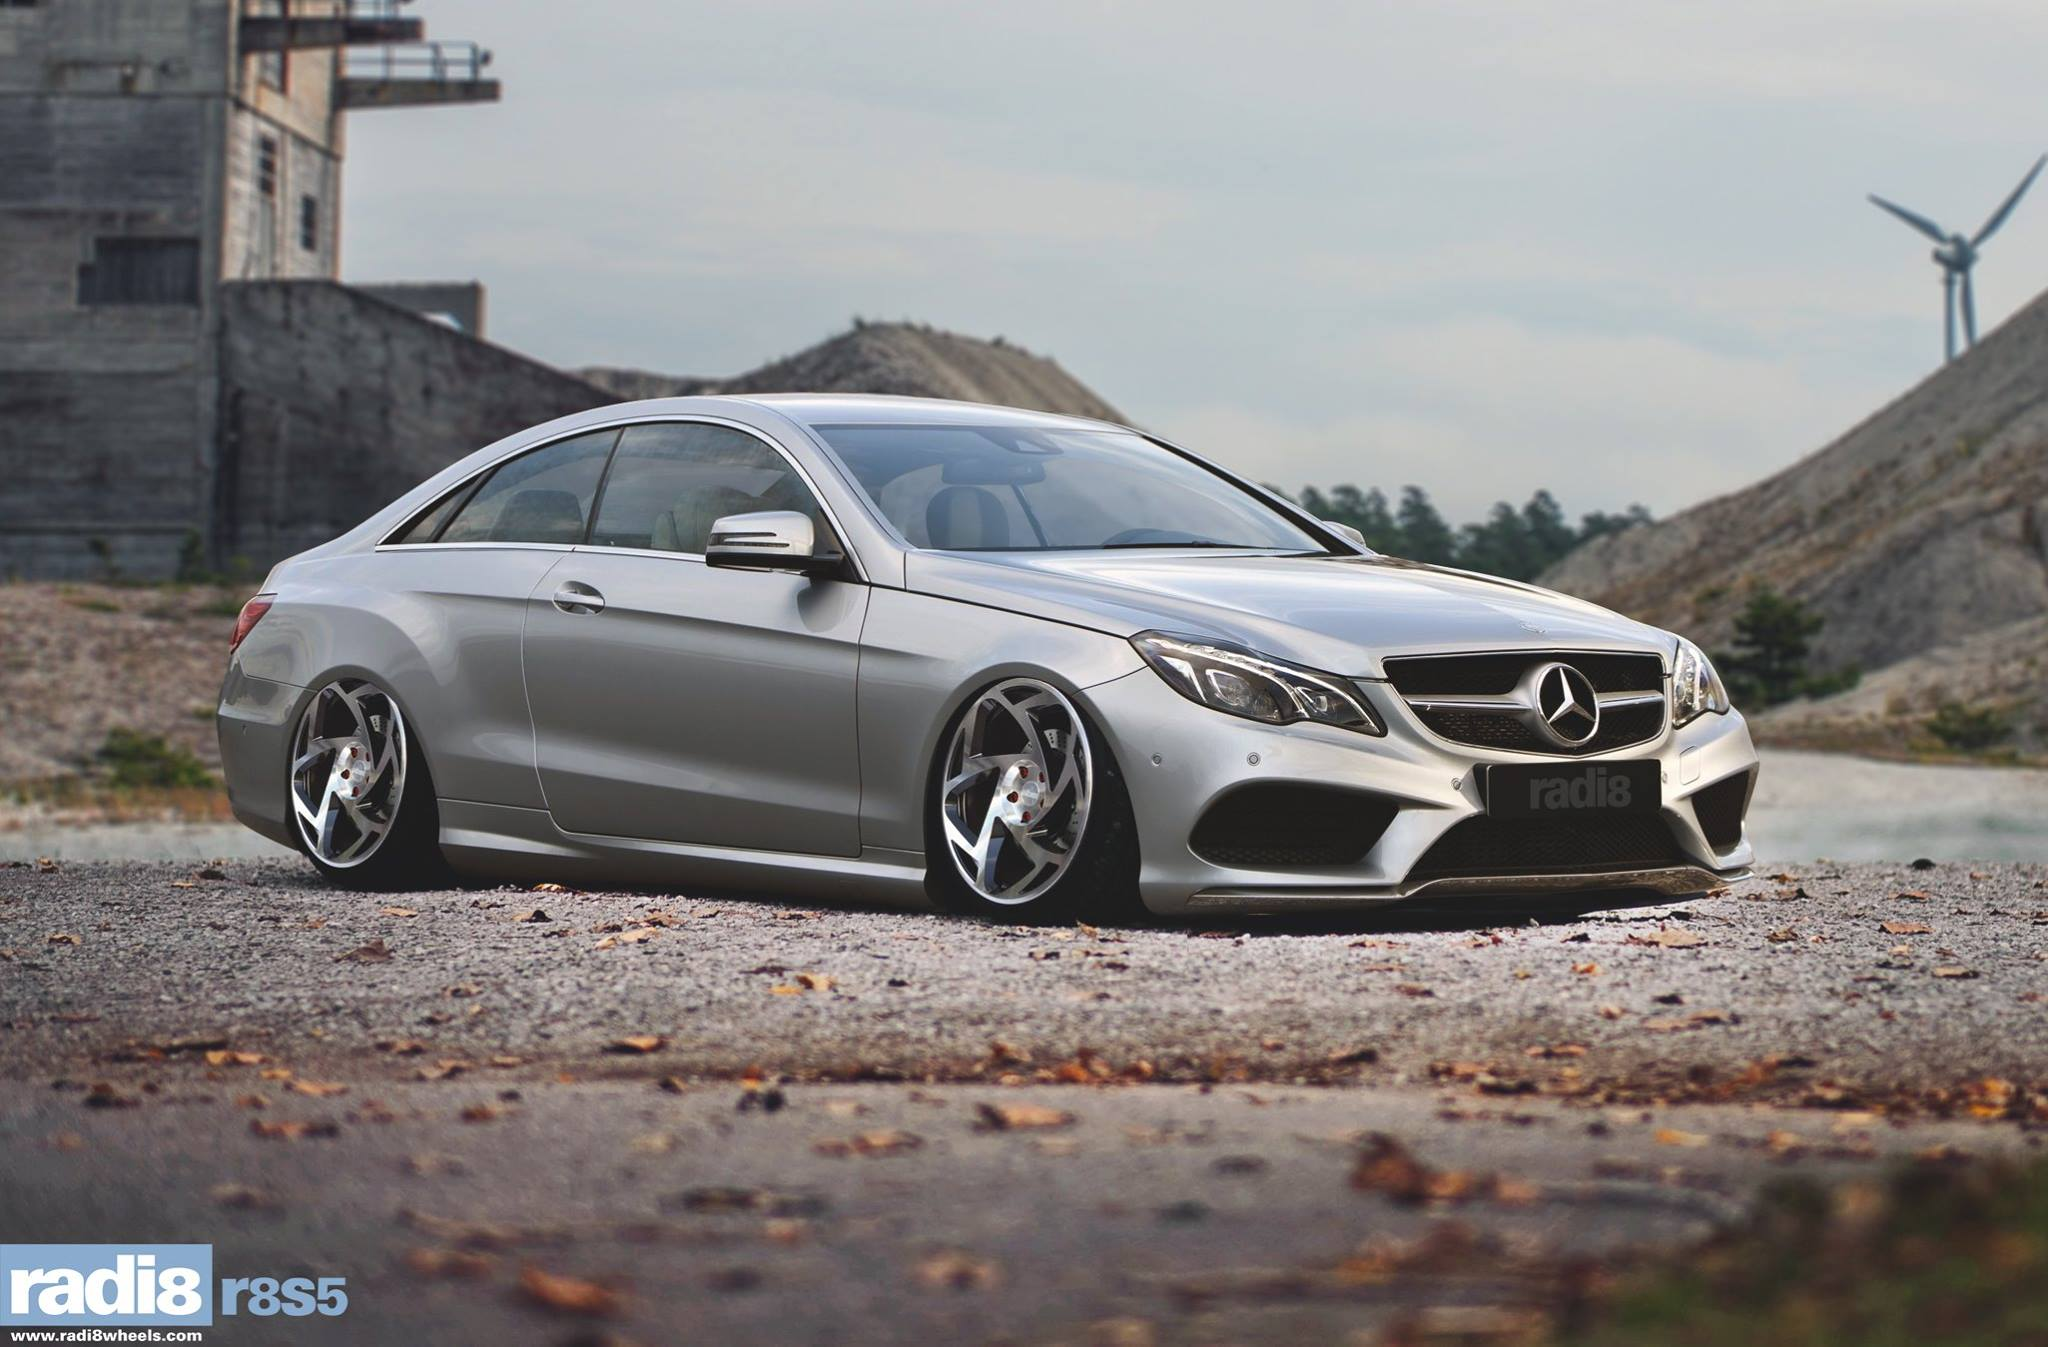 Radi8 R8S5 - Mercedes E220 AMG sports package